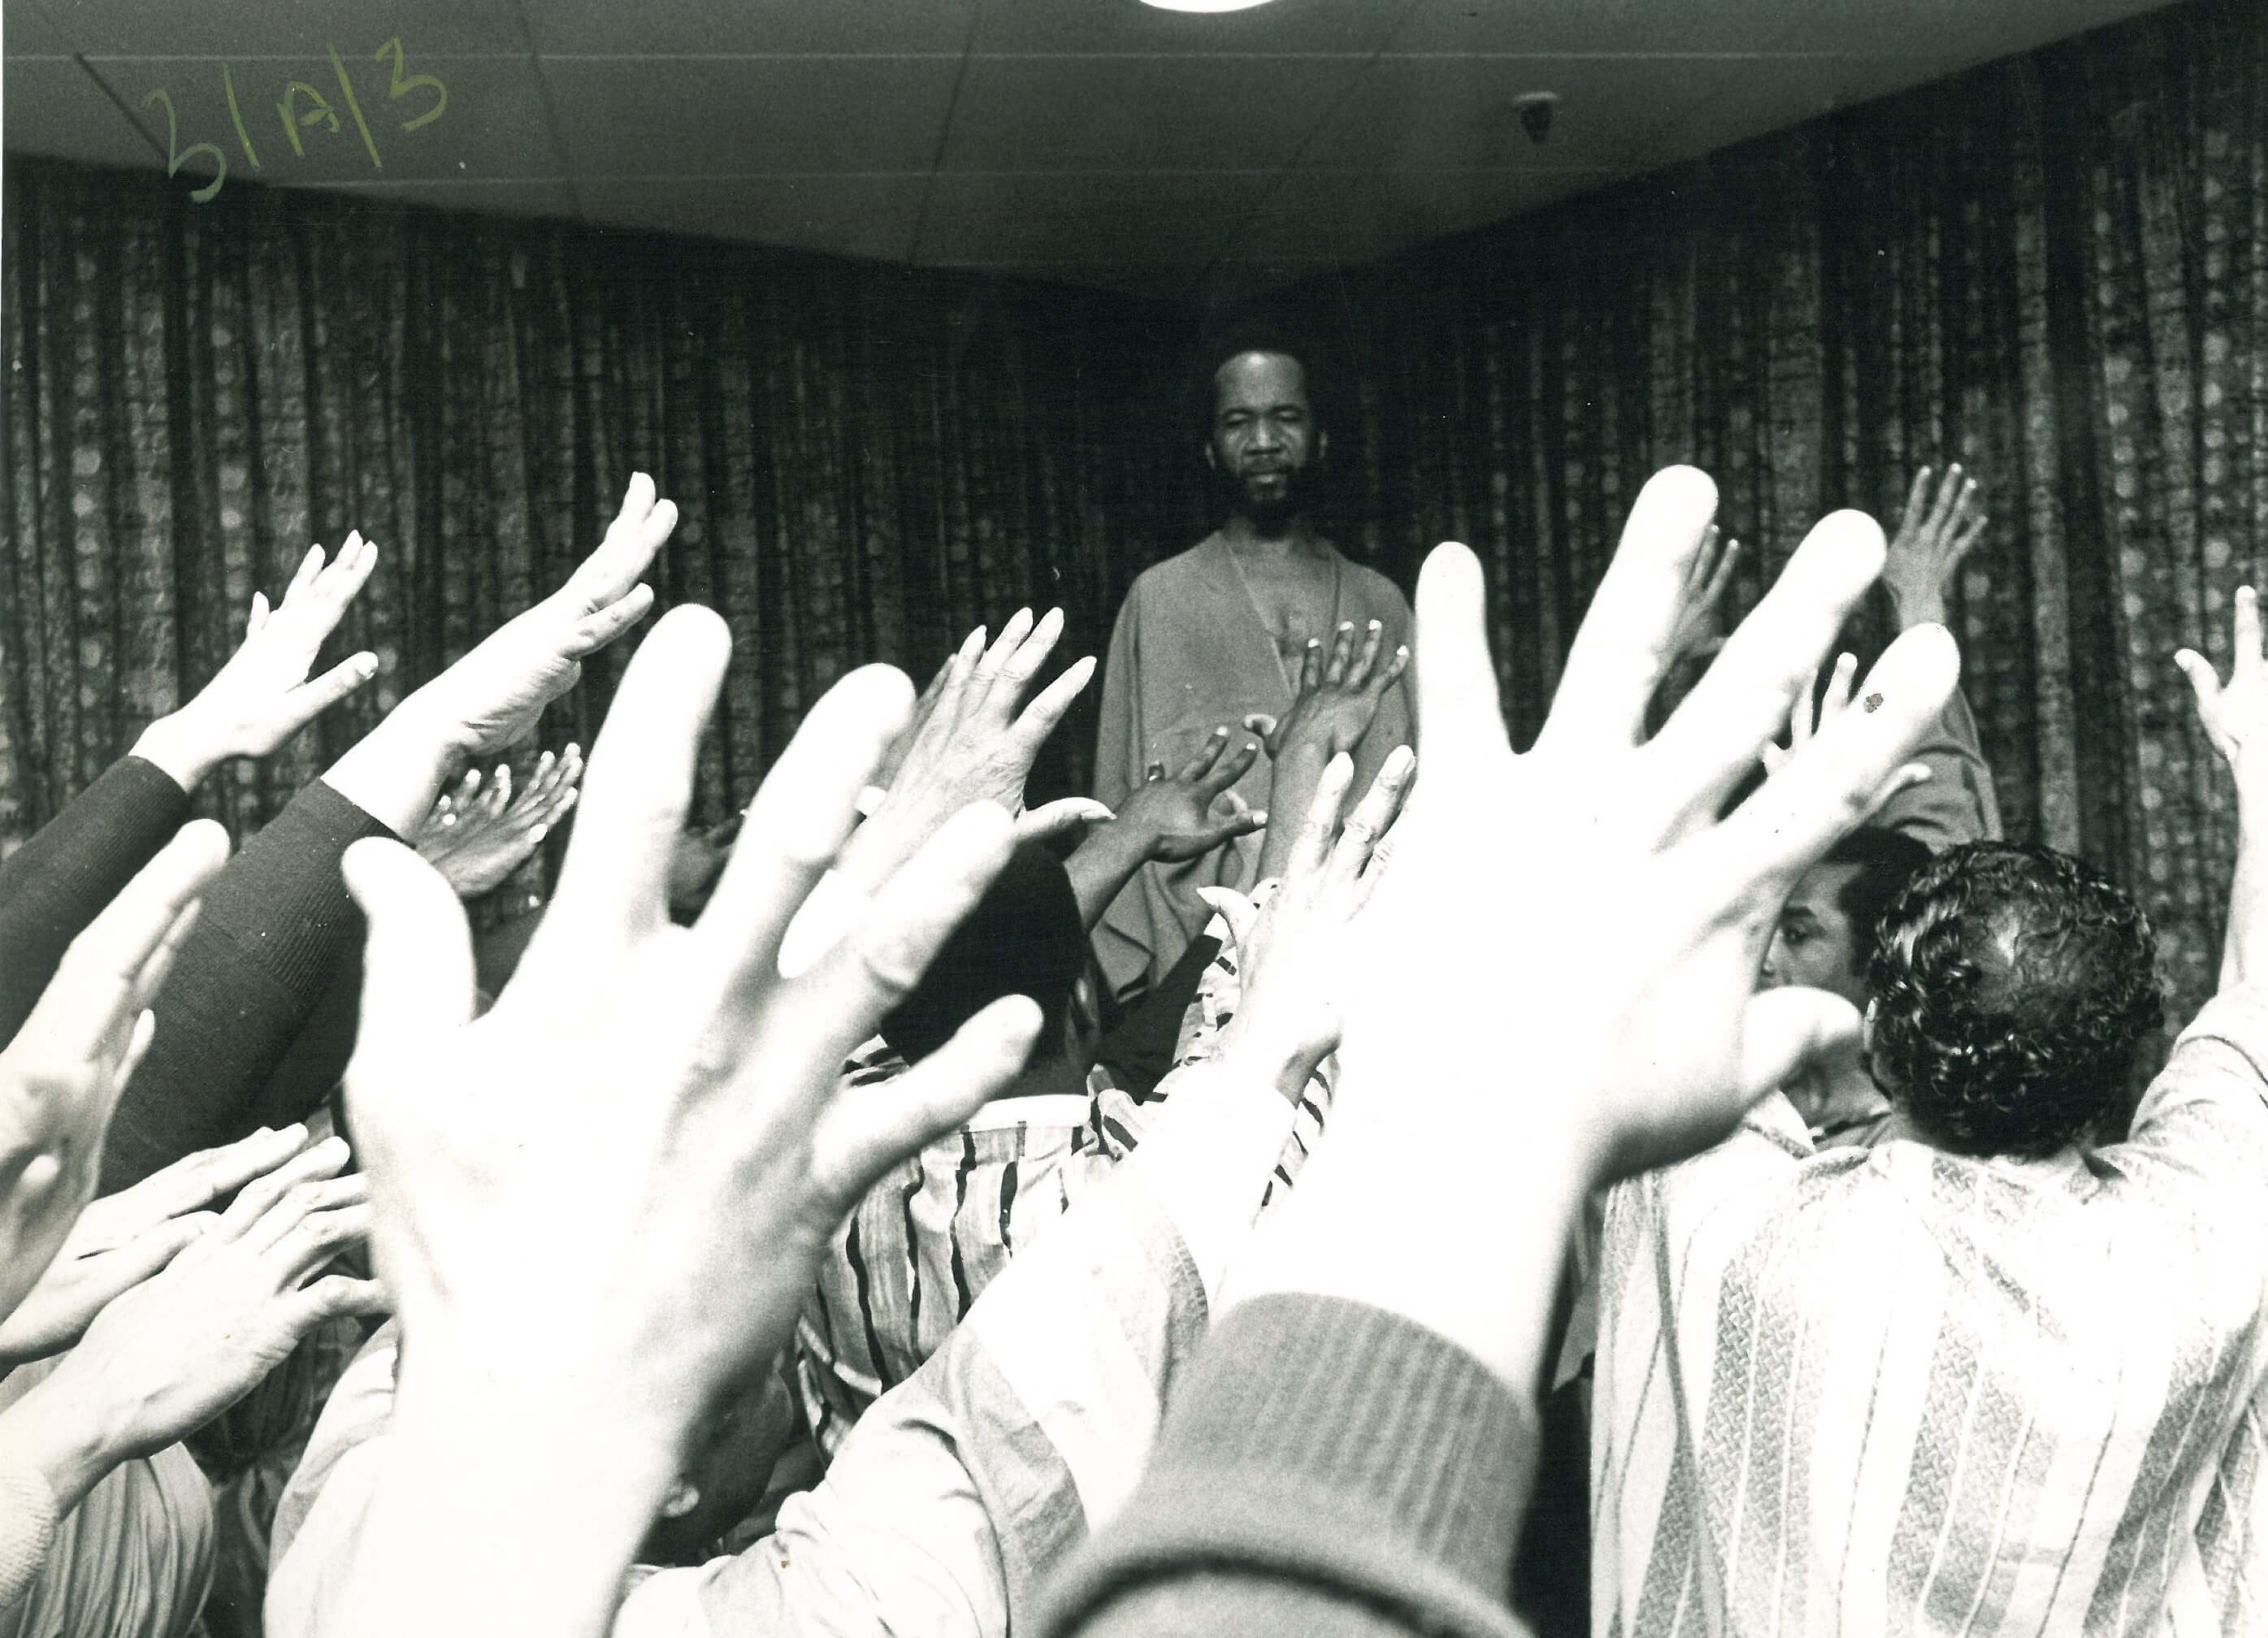 A sea of hands raised towards George Browne, playing Jesus, as he stands on stage before the kneeling crowd.